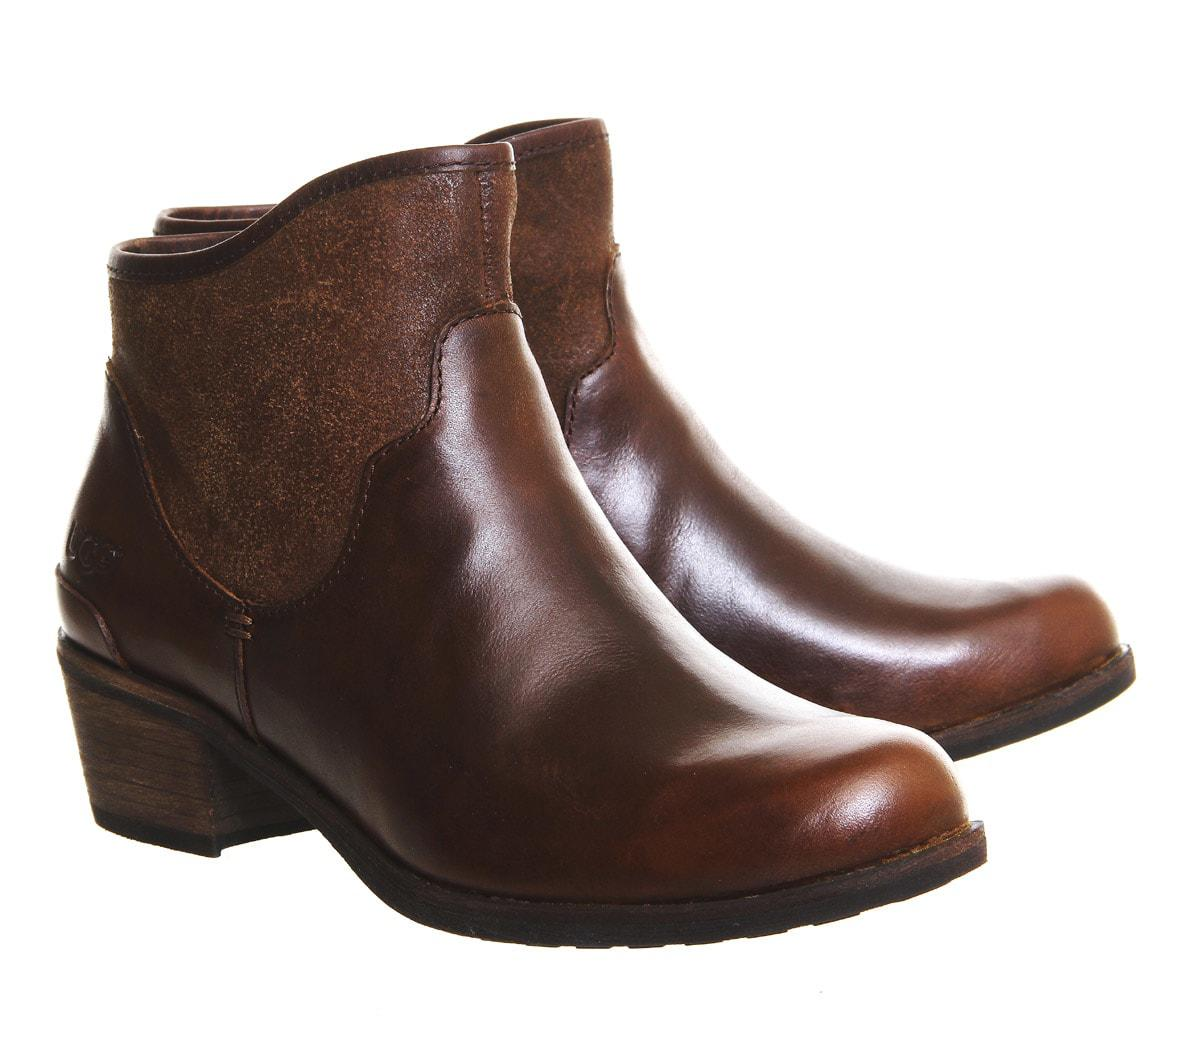 73d670ca057 UGG Penelope Ankle Boots in Brown - Lyst